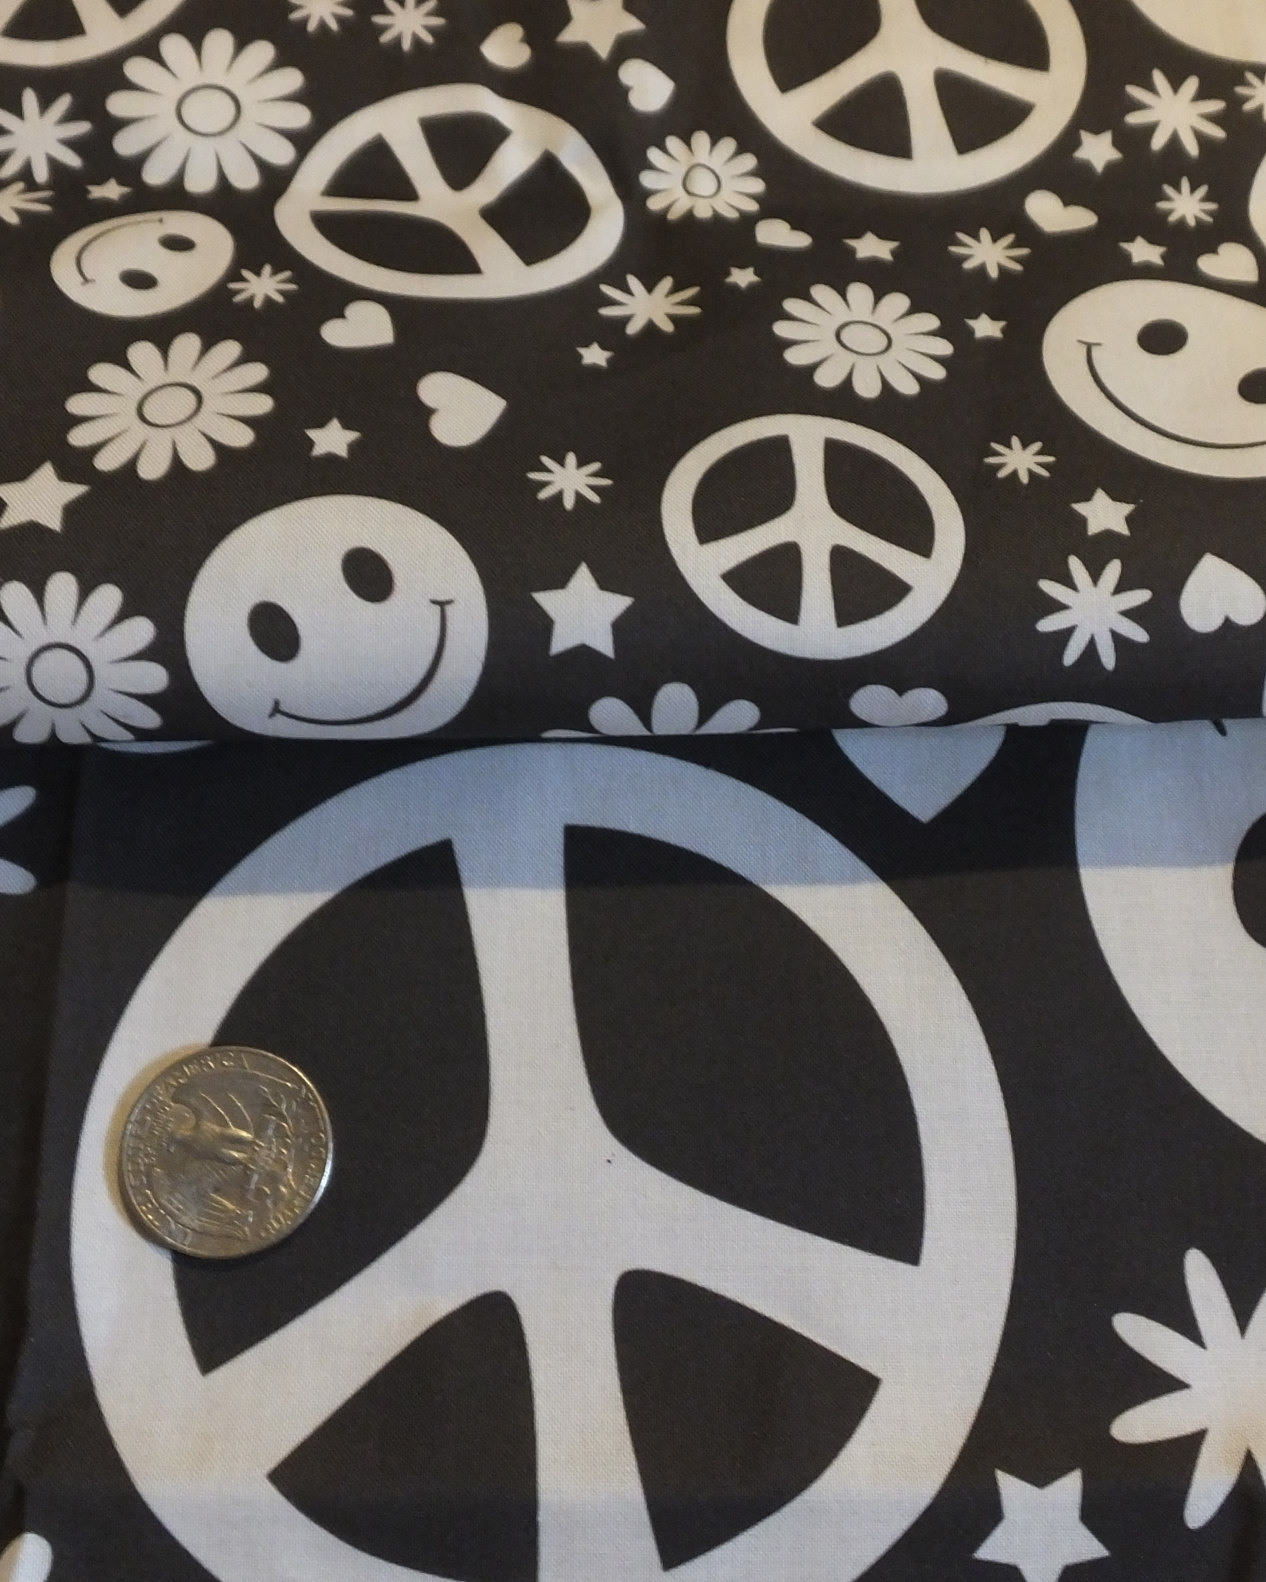 Hippie peace symbol and happy face black and white fabric